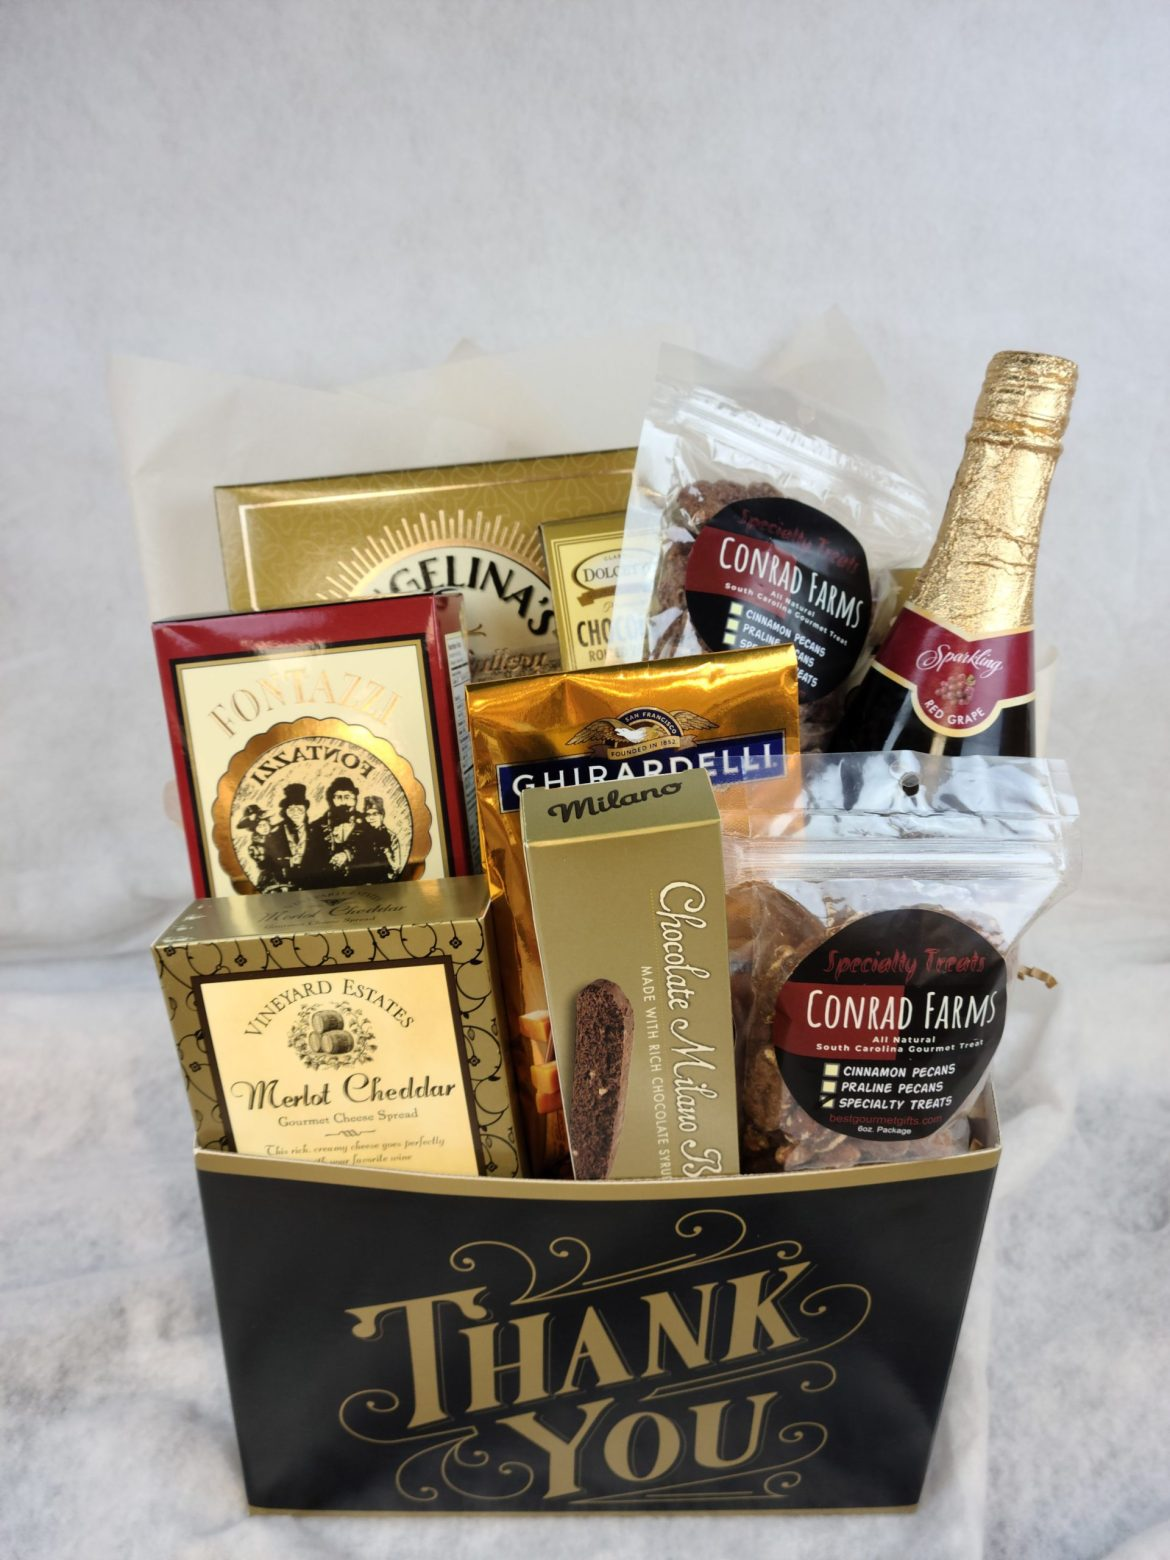 Thank you basket image with sparkling juice and snacks from conrad farms.